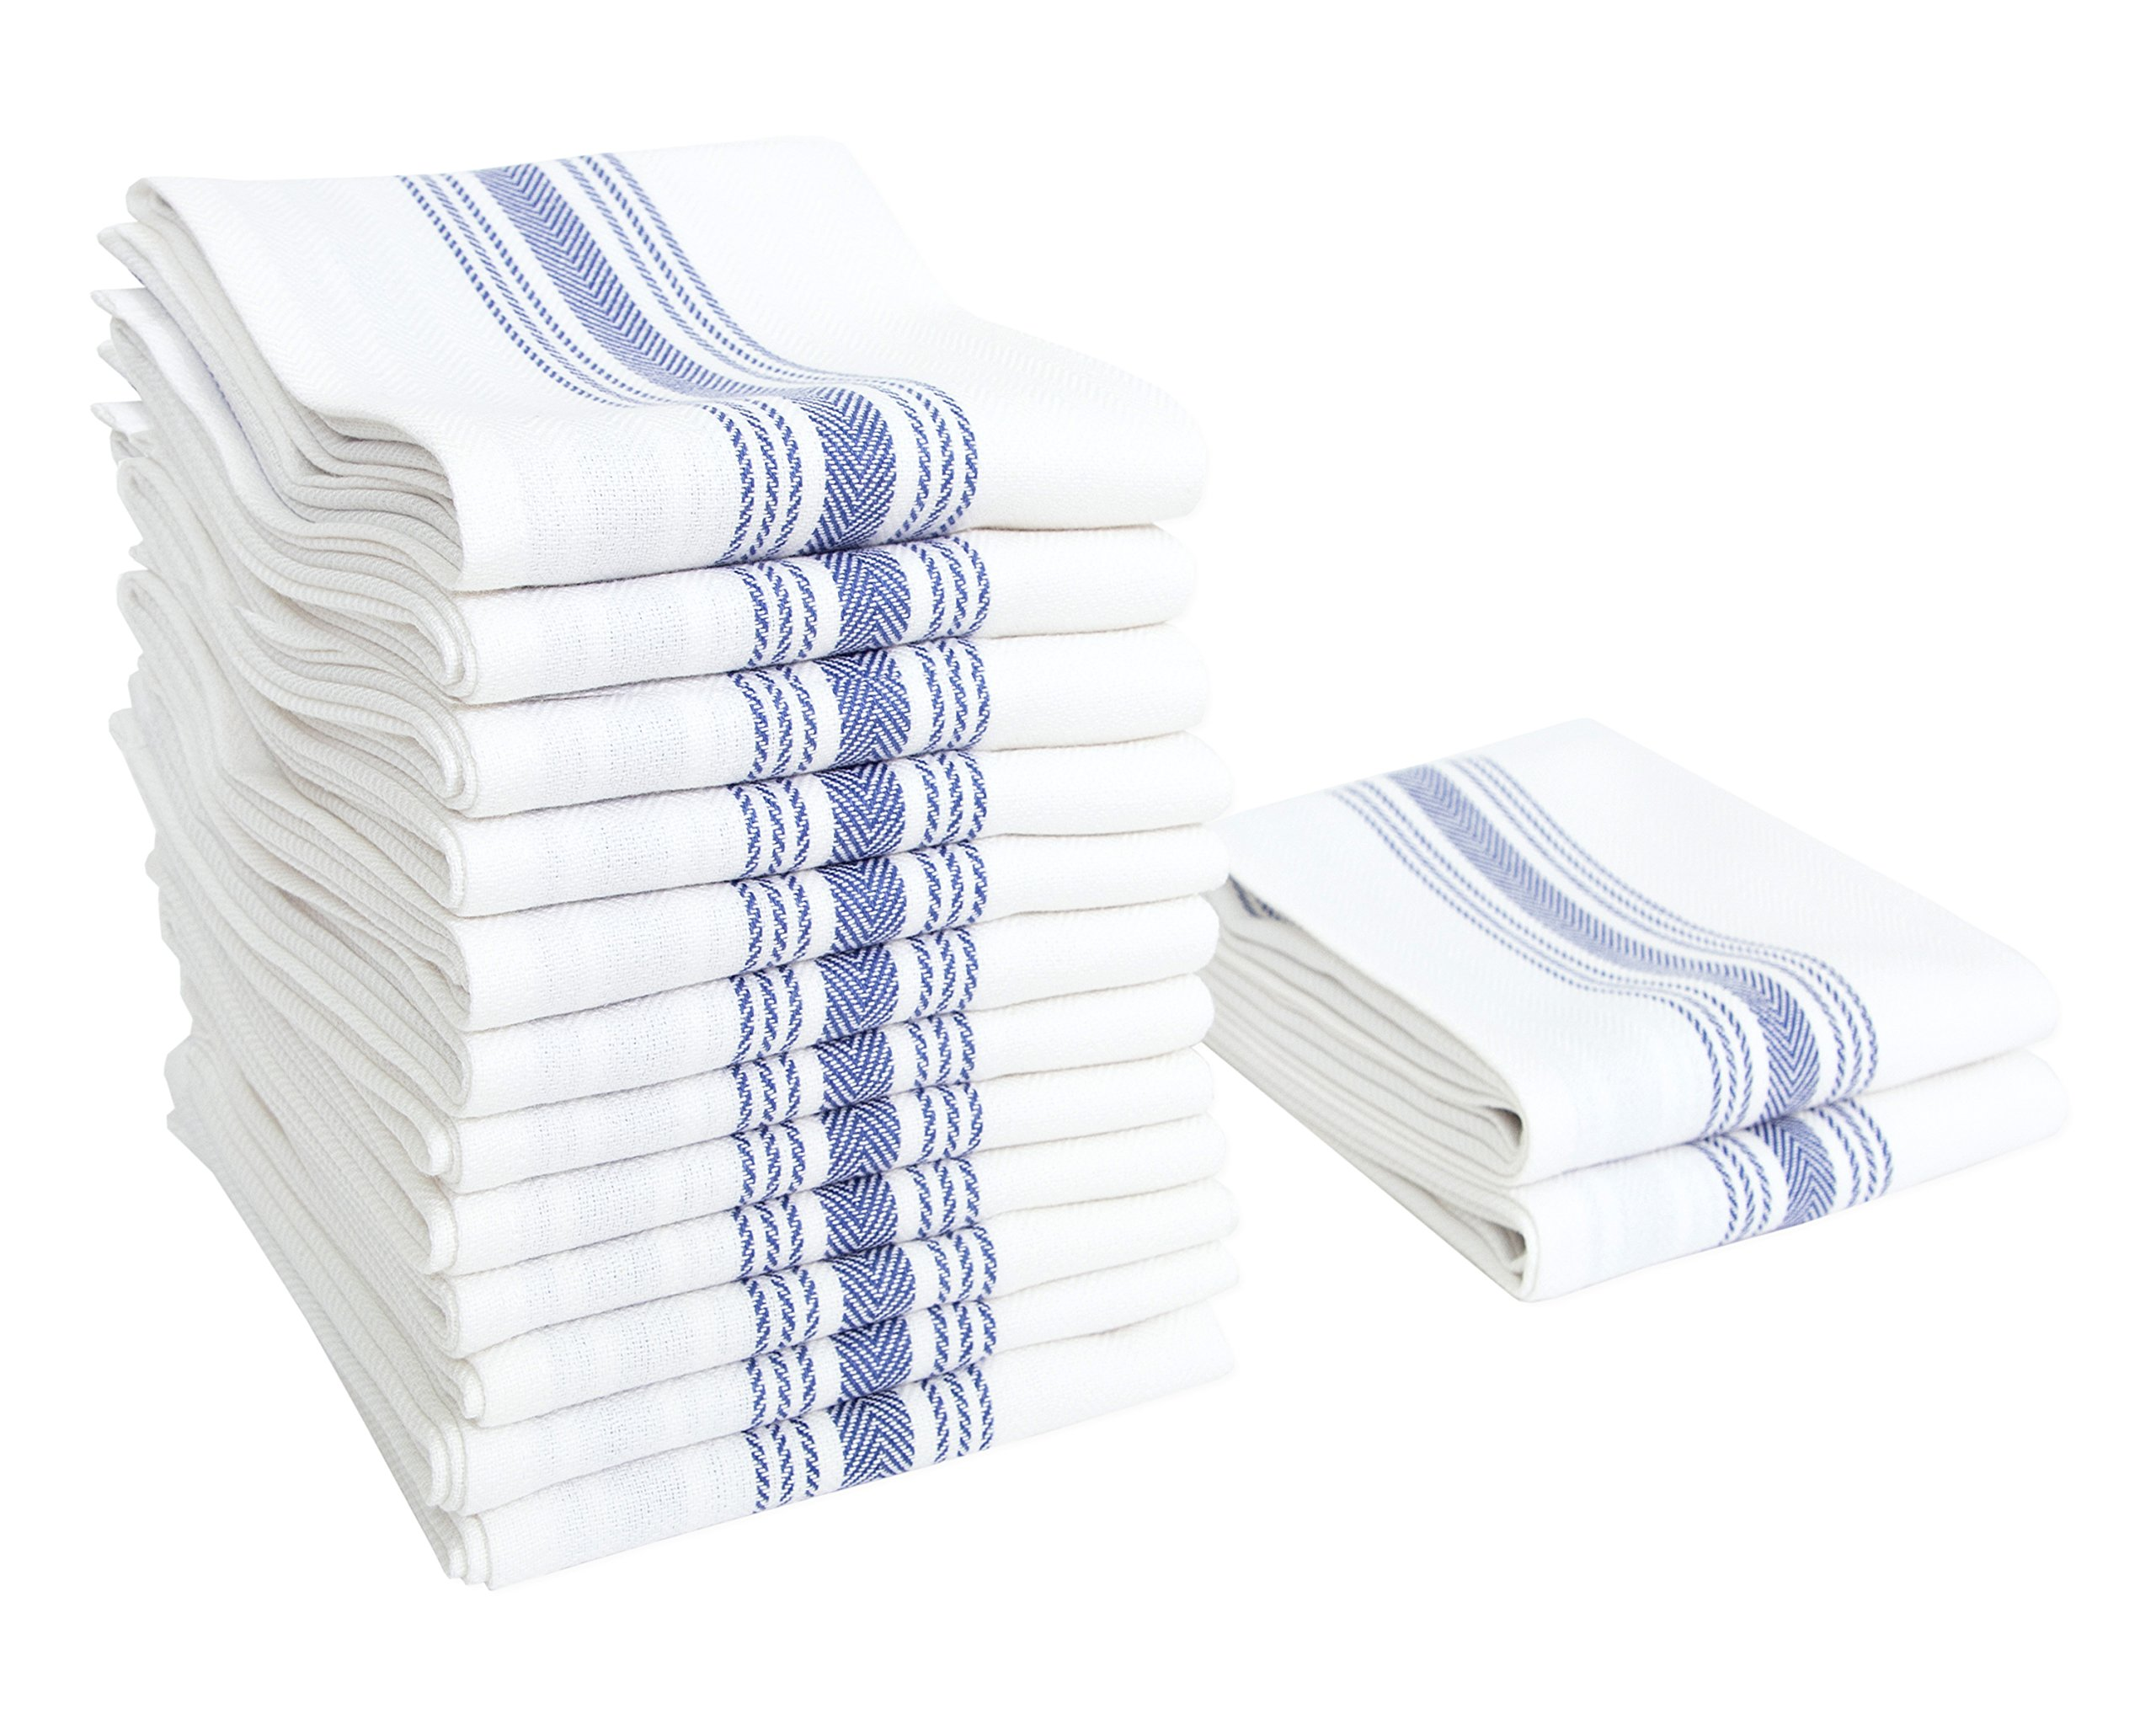 Value Basics Herringbone Stripe Kitchen Towel Set, 15'' x 25'', 14-Pack, Blue & White